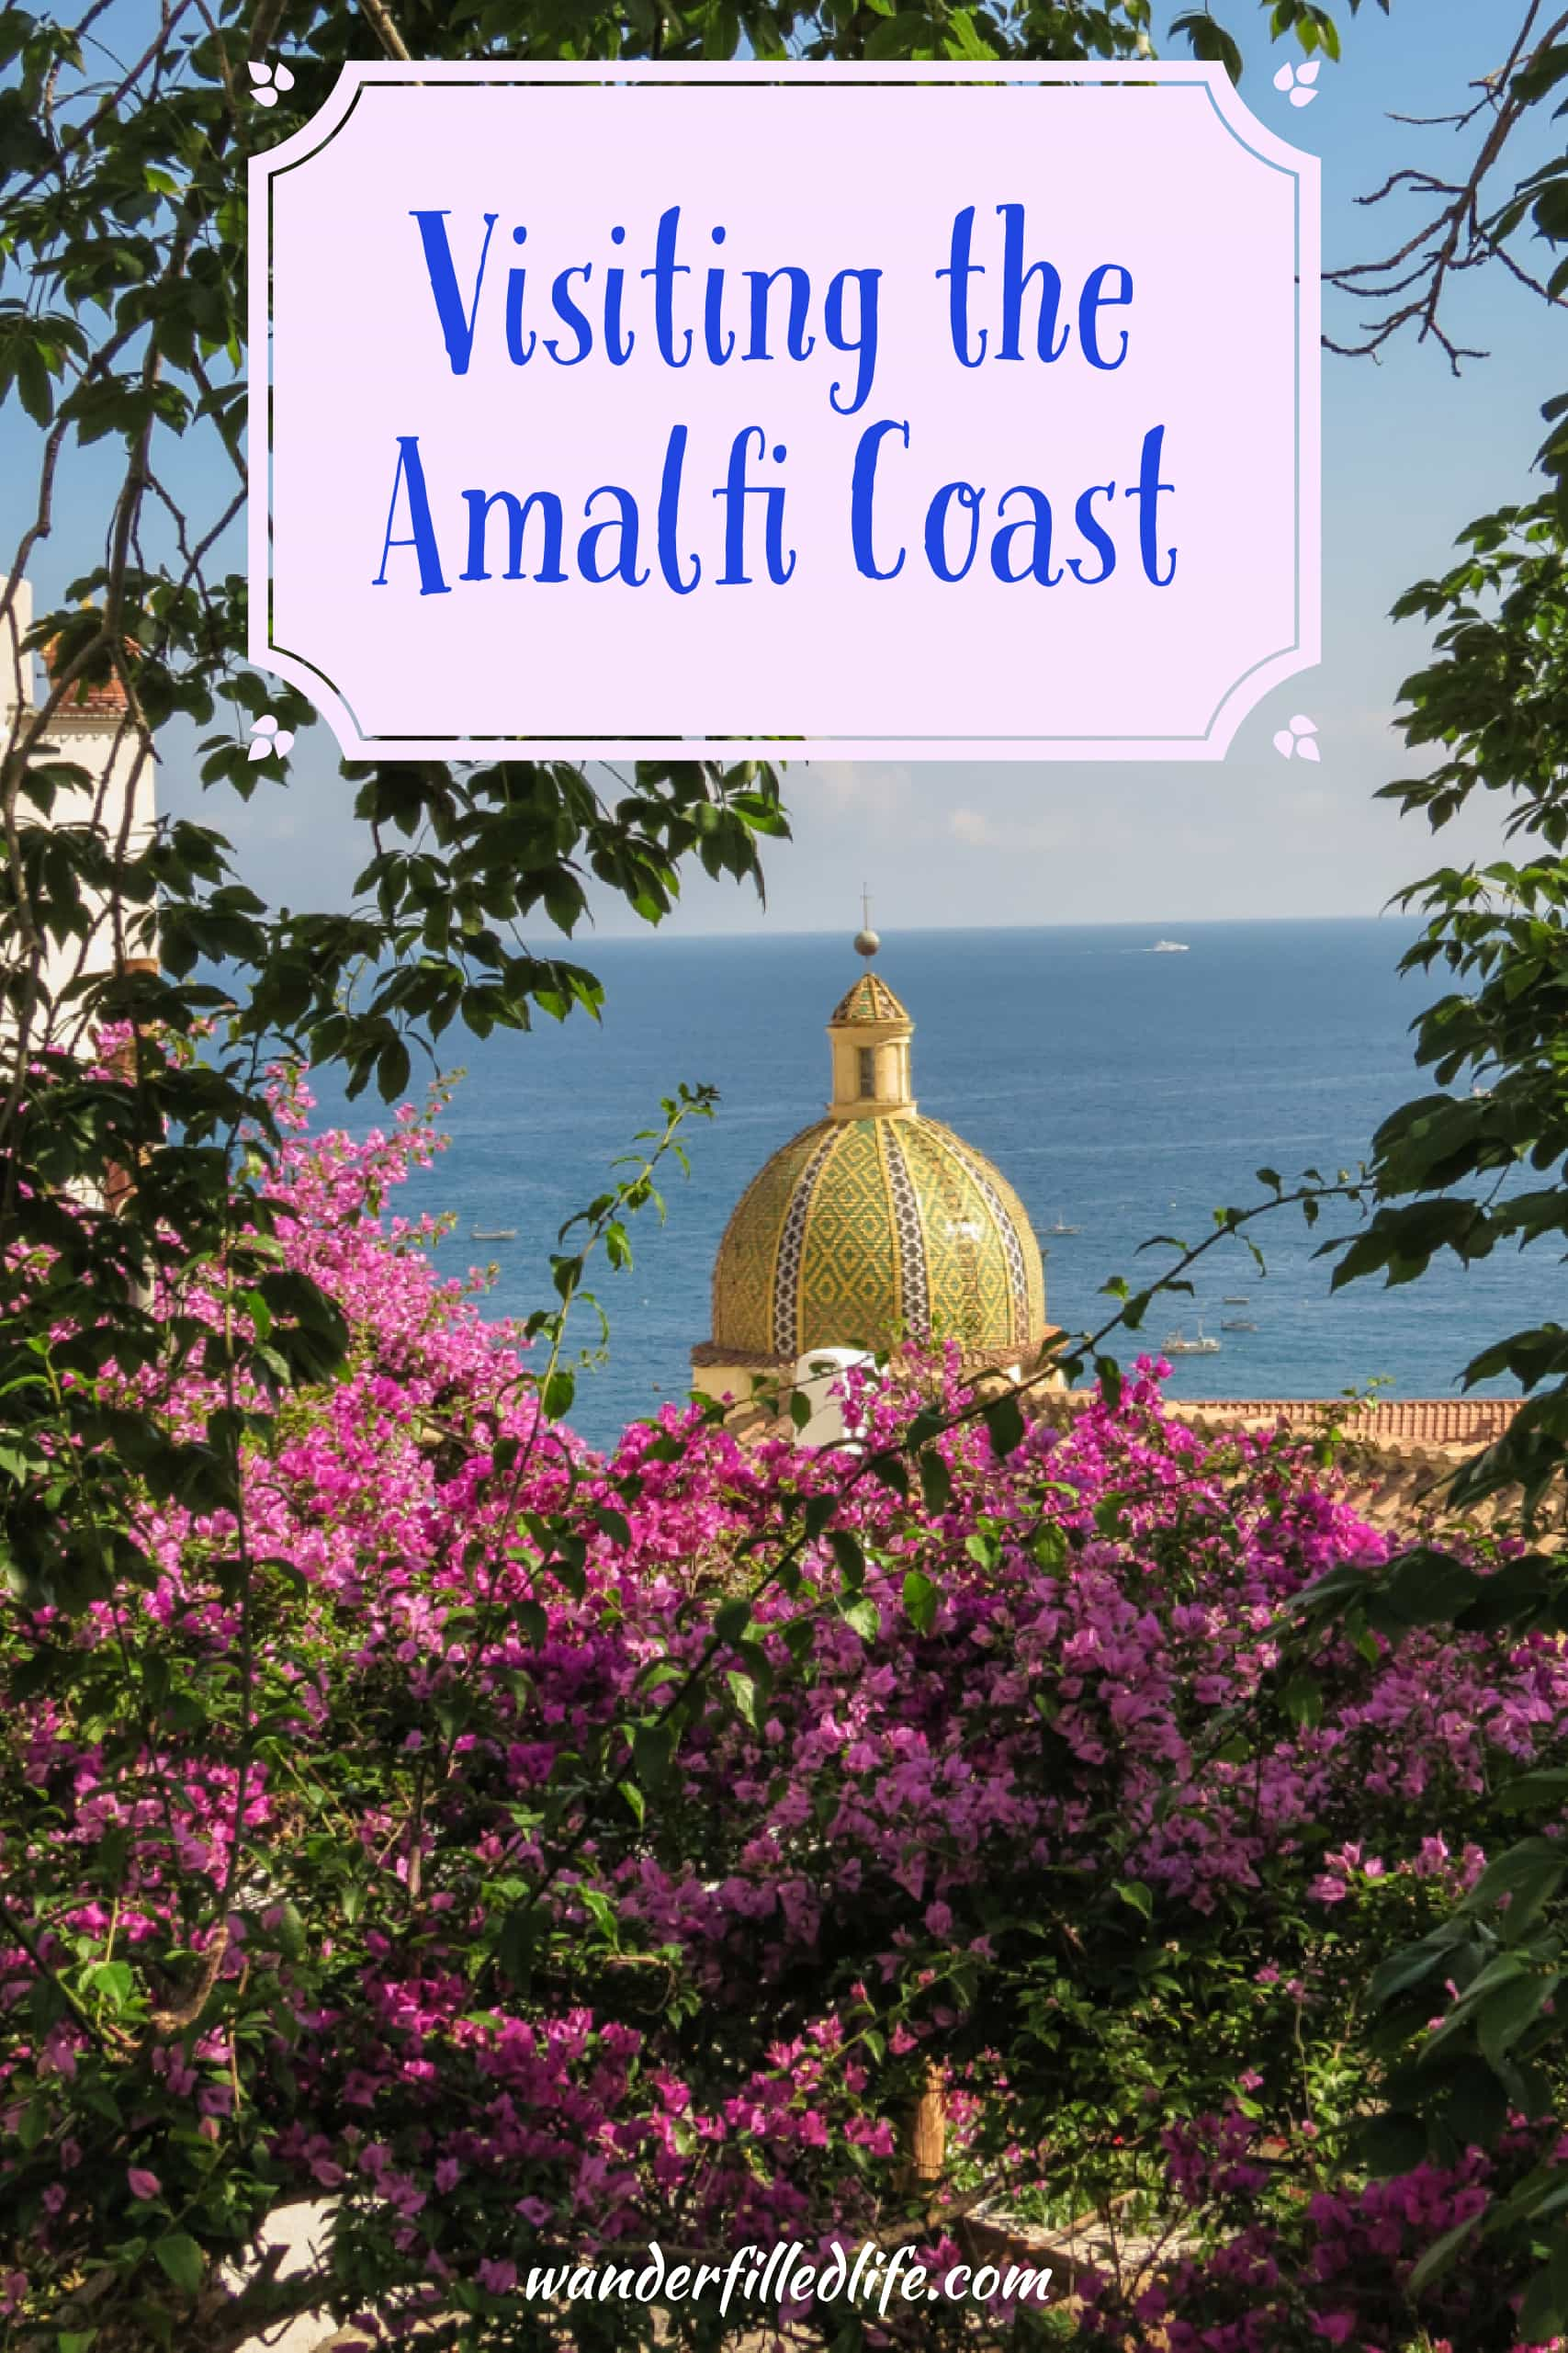 Touring the Amalfi Coast, including Salerno, Sorrento, Positano and Amalfi, plus detailed directions for hiking the Path of the Gods.